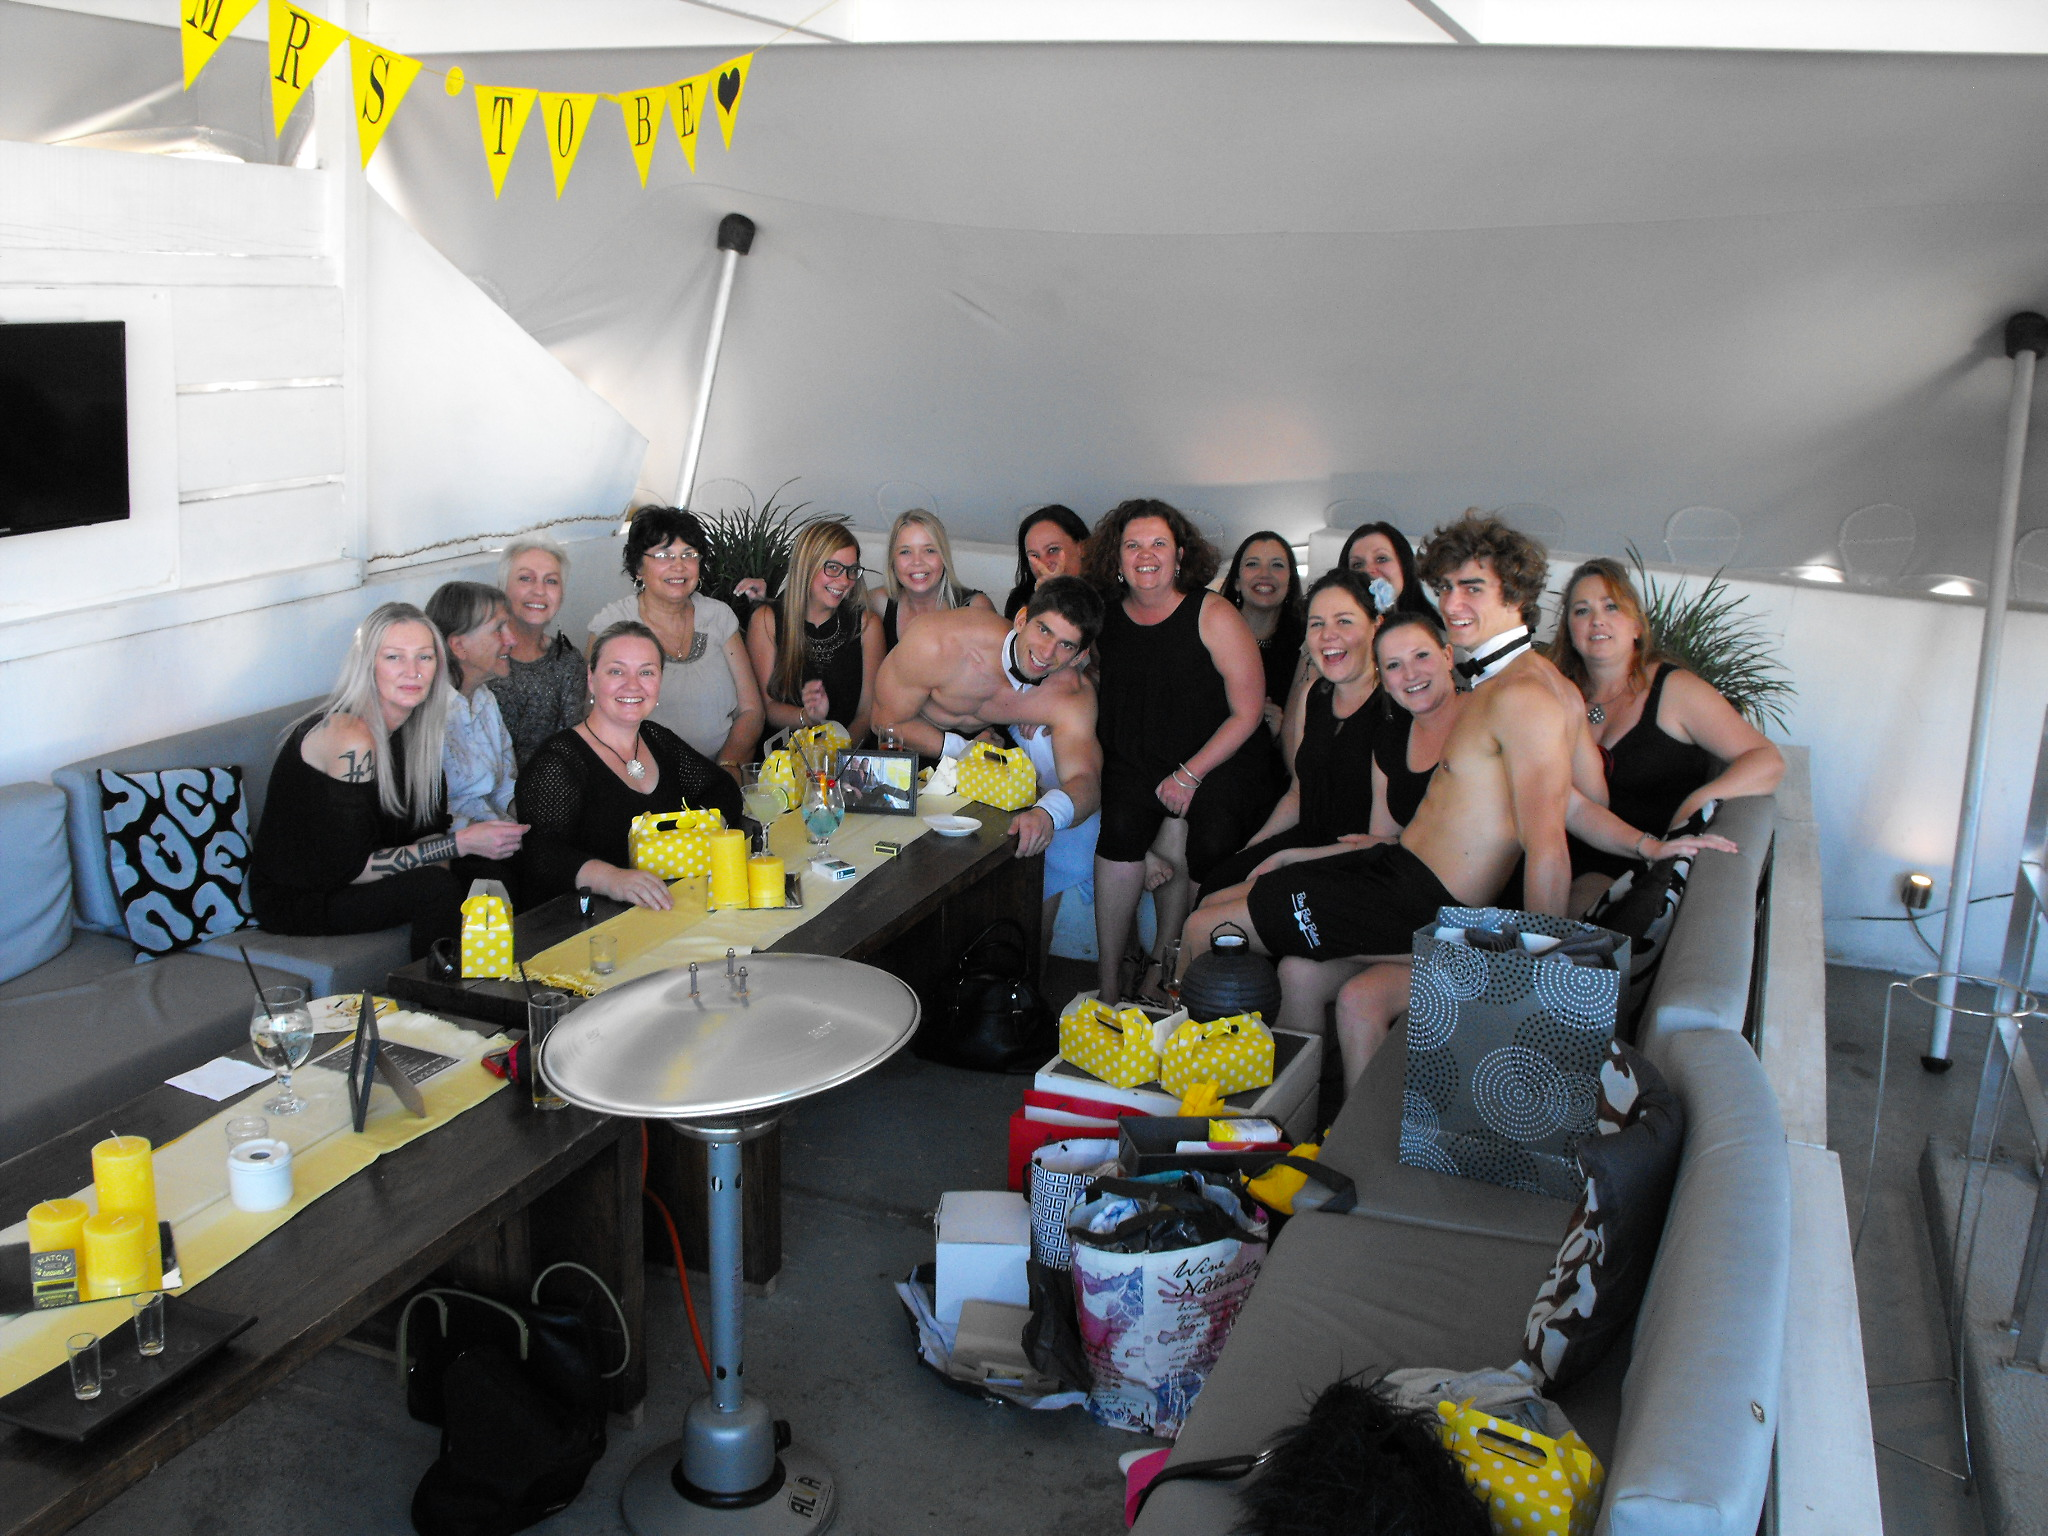 Party with the Famous Bare Butt Butlers!